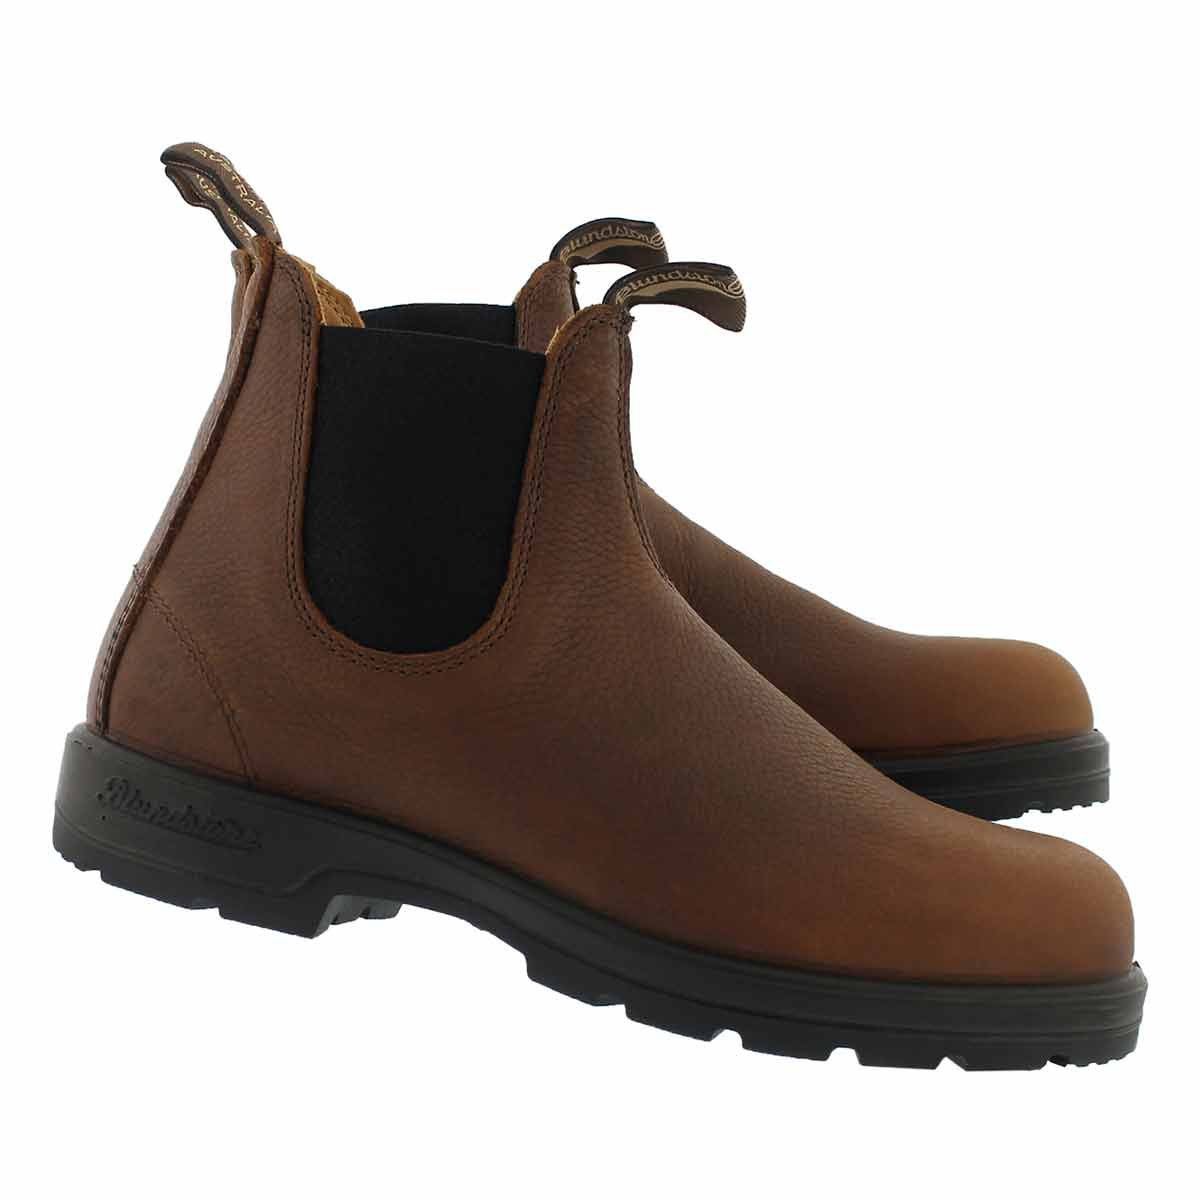 Mns Lthr Lined pebble brn twin gore boot